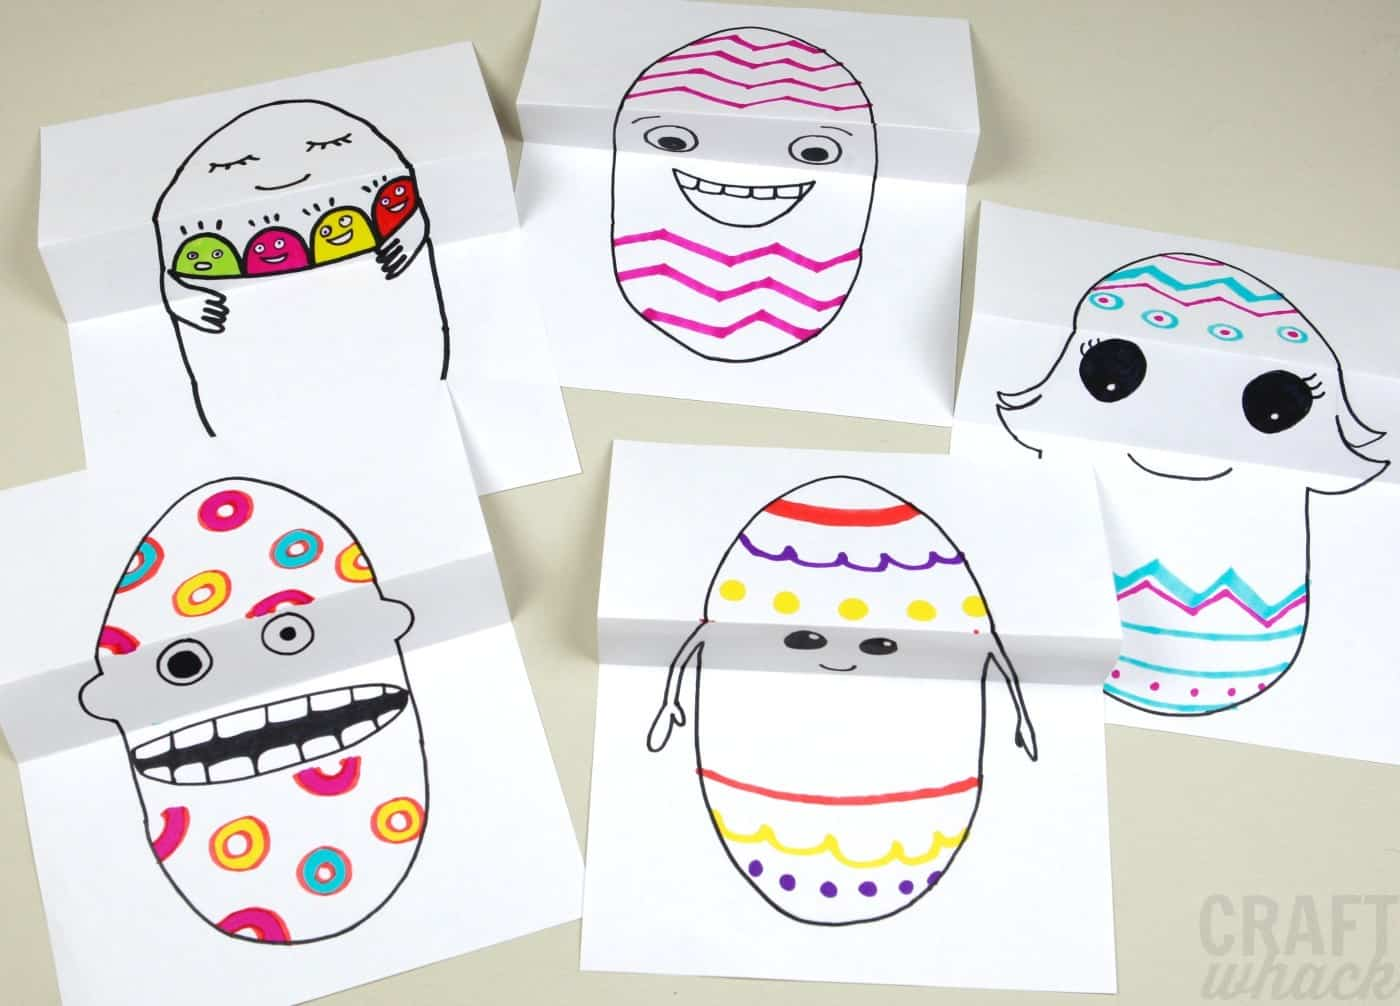 Funny Easter egg drawings